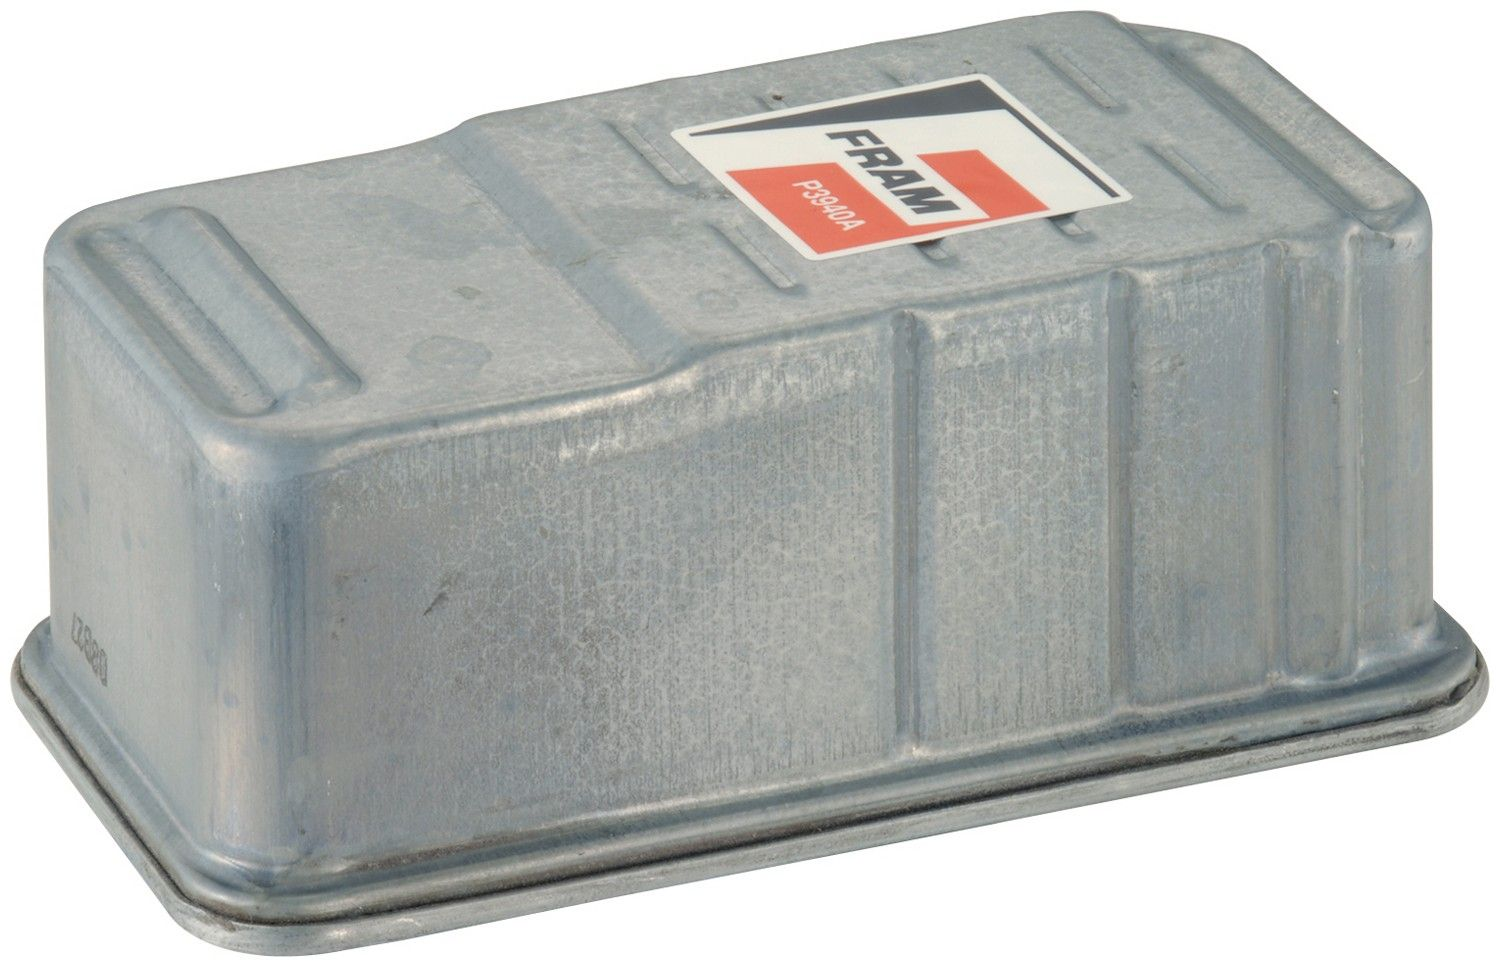 Jeep Cherokee Fuel Filter Replacement Fram Hastings Mahle Mopar Filters 1985 4 Cyl 21l P3940a Box Type Replaces P3940